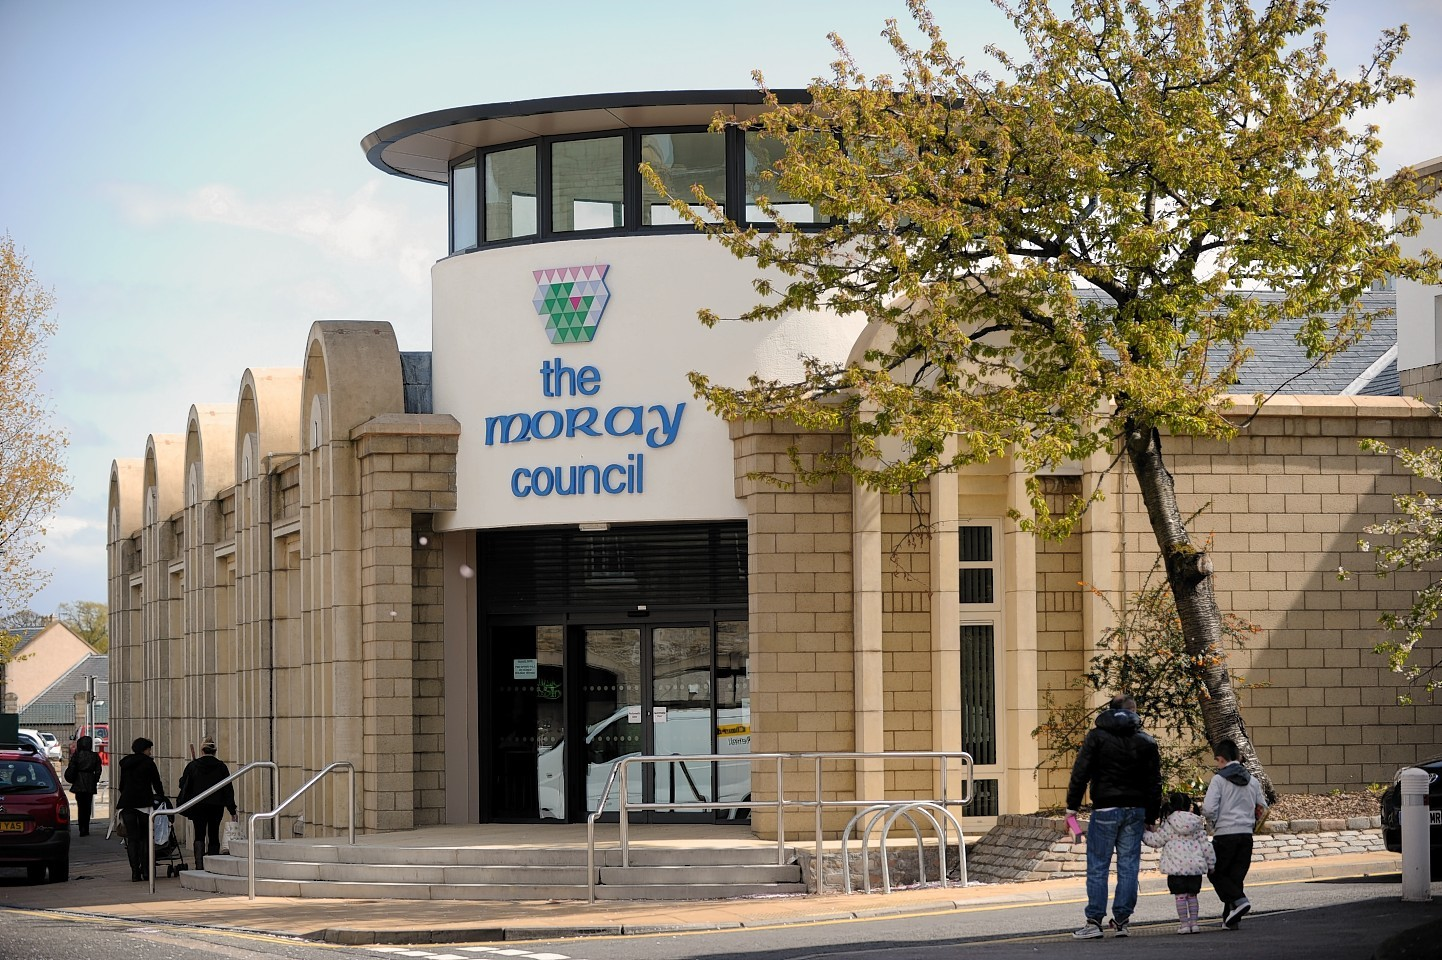 Councillors will meet again to agree leadership positions on Wednesday.